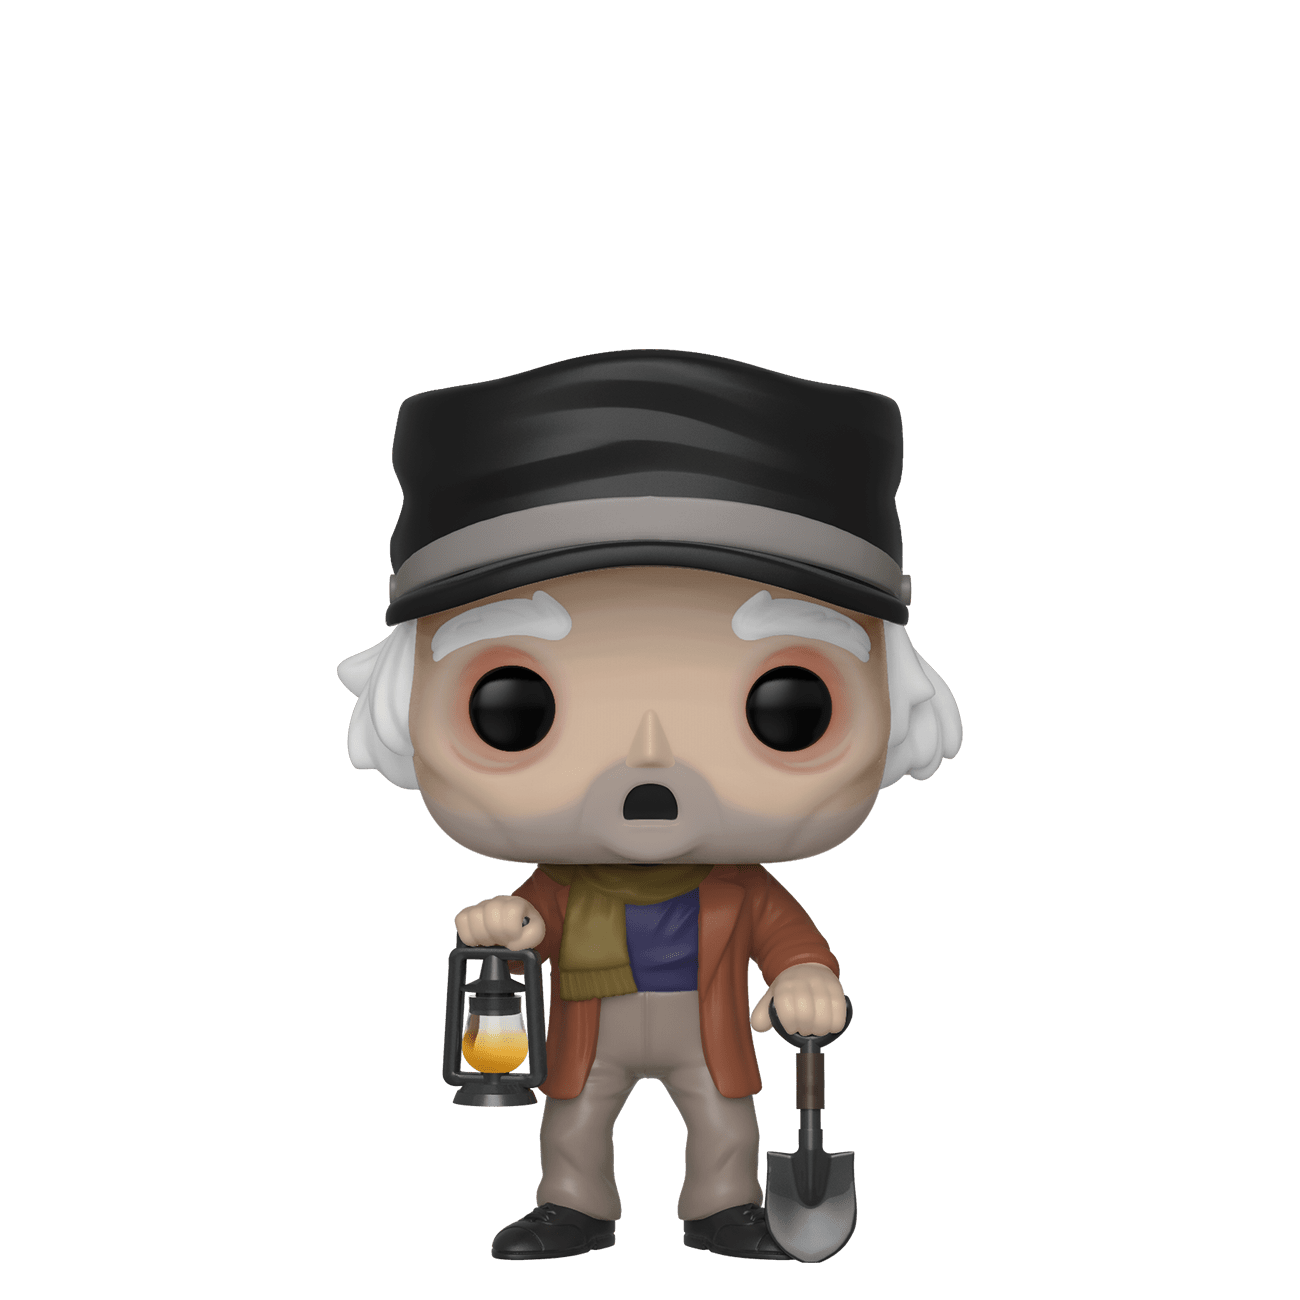 42151_HauntedMansion_Groundskeeper_POP_GLAM_WEB.png